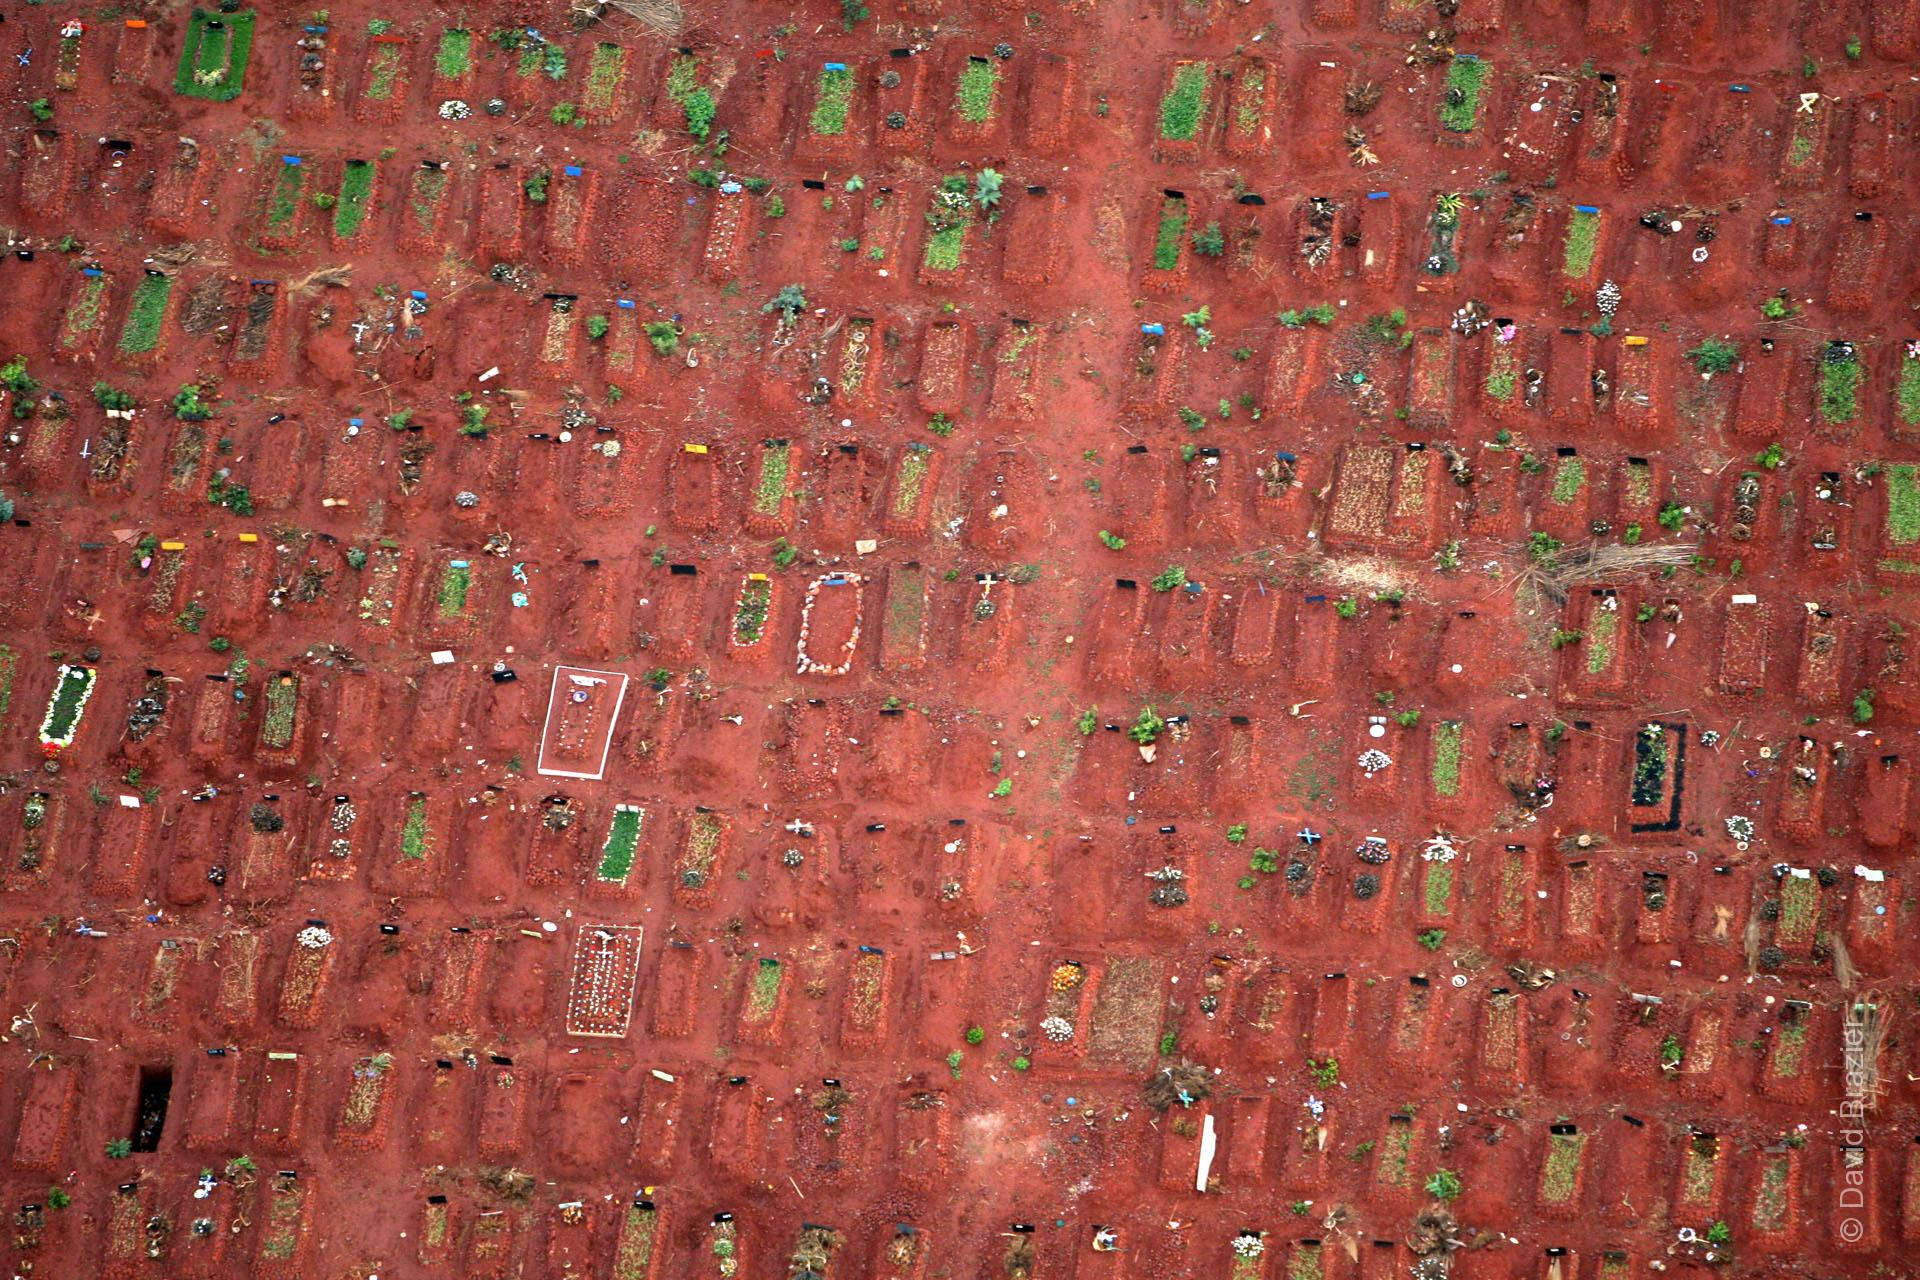 Aerial view of graves in red soil, Harare